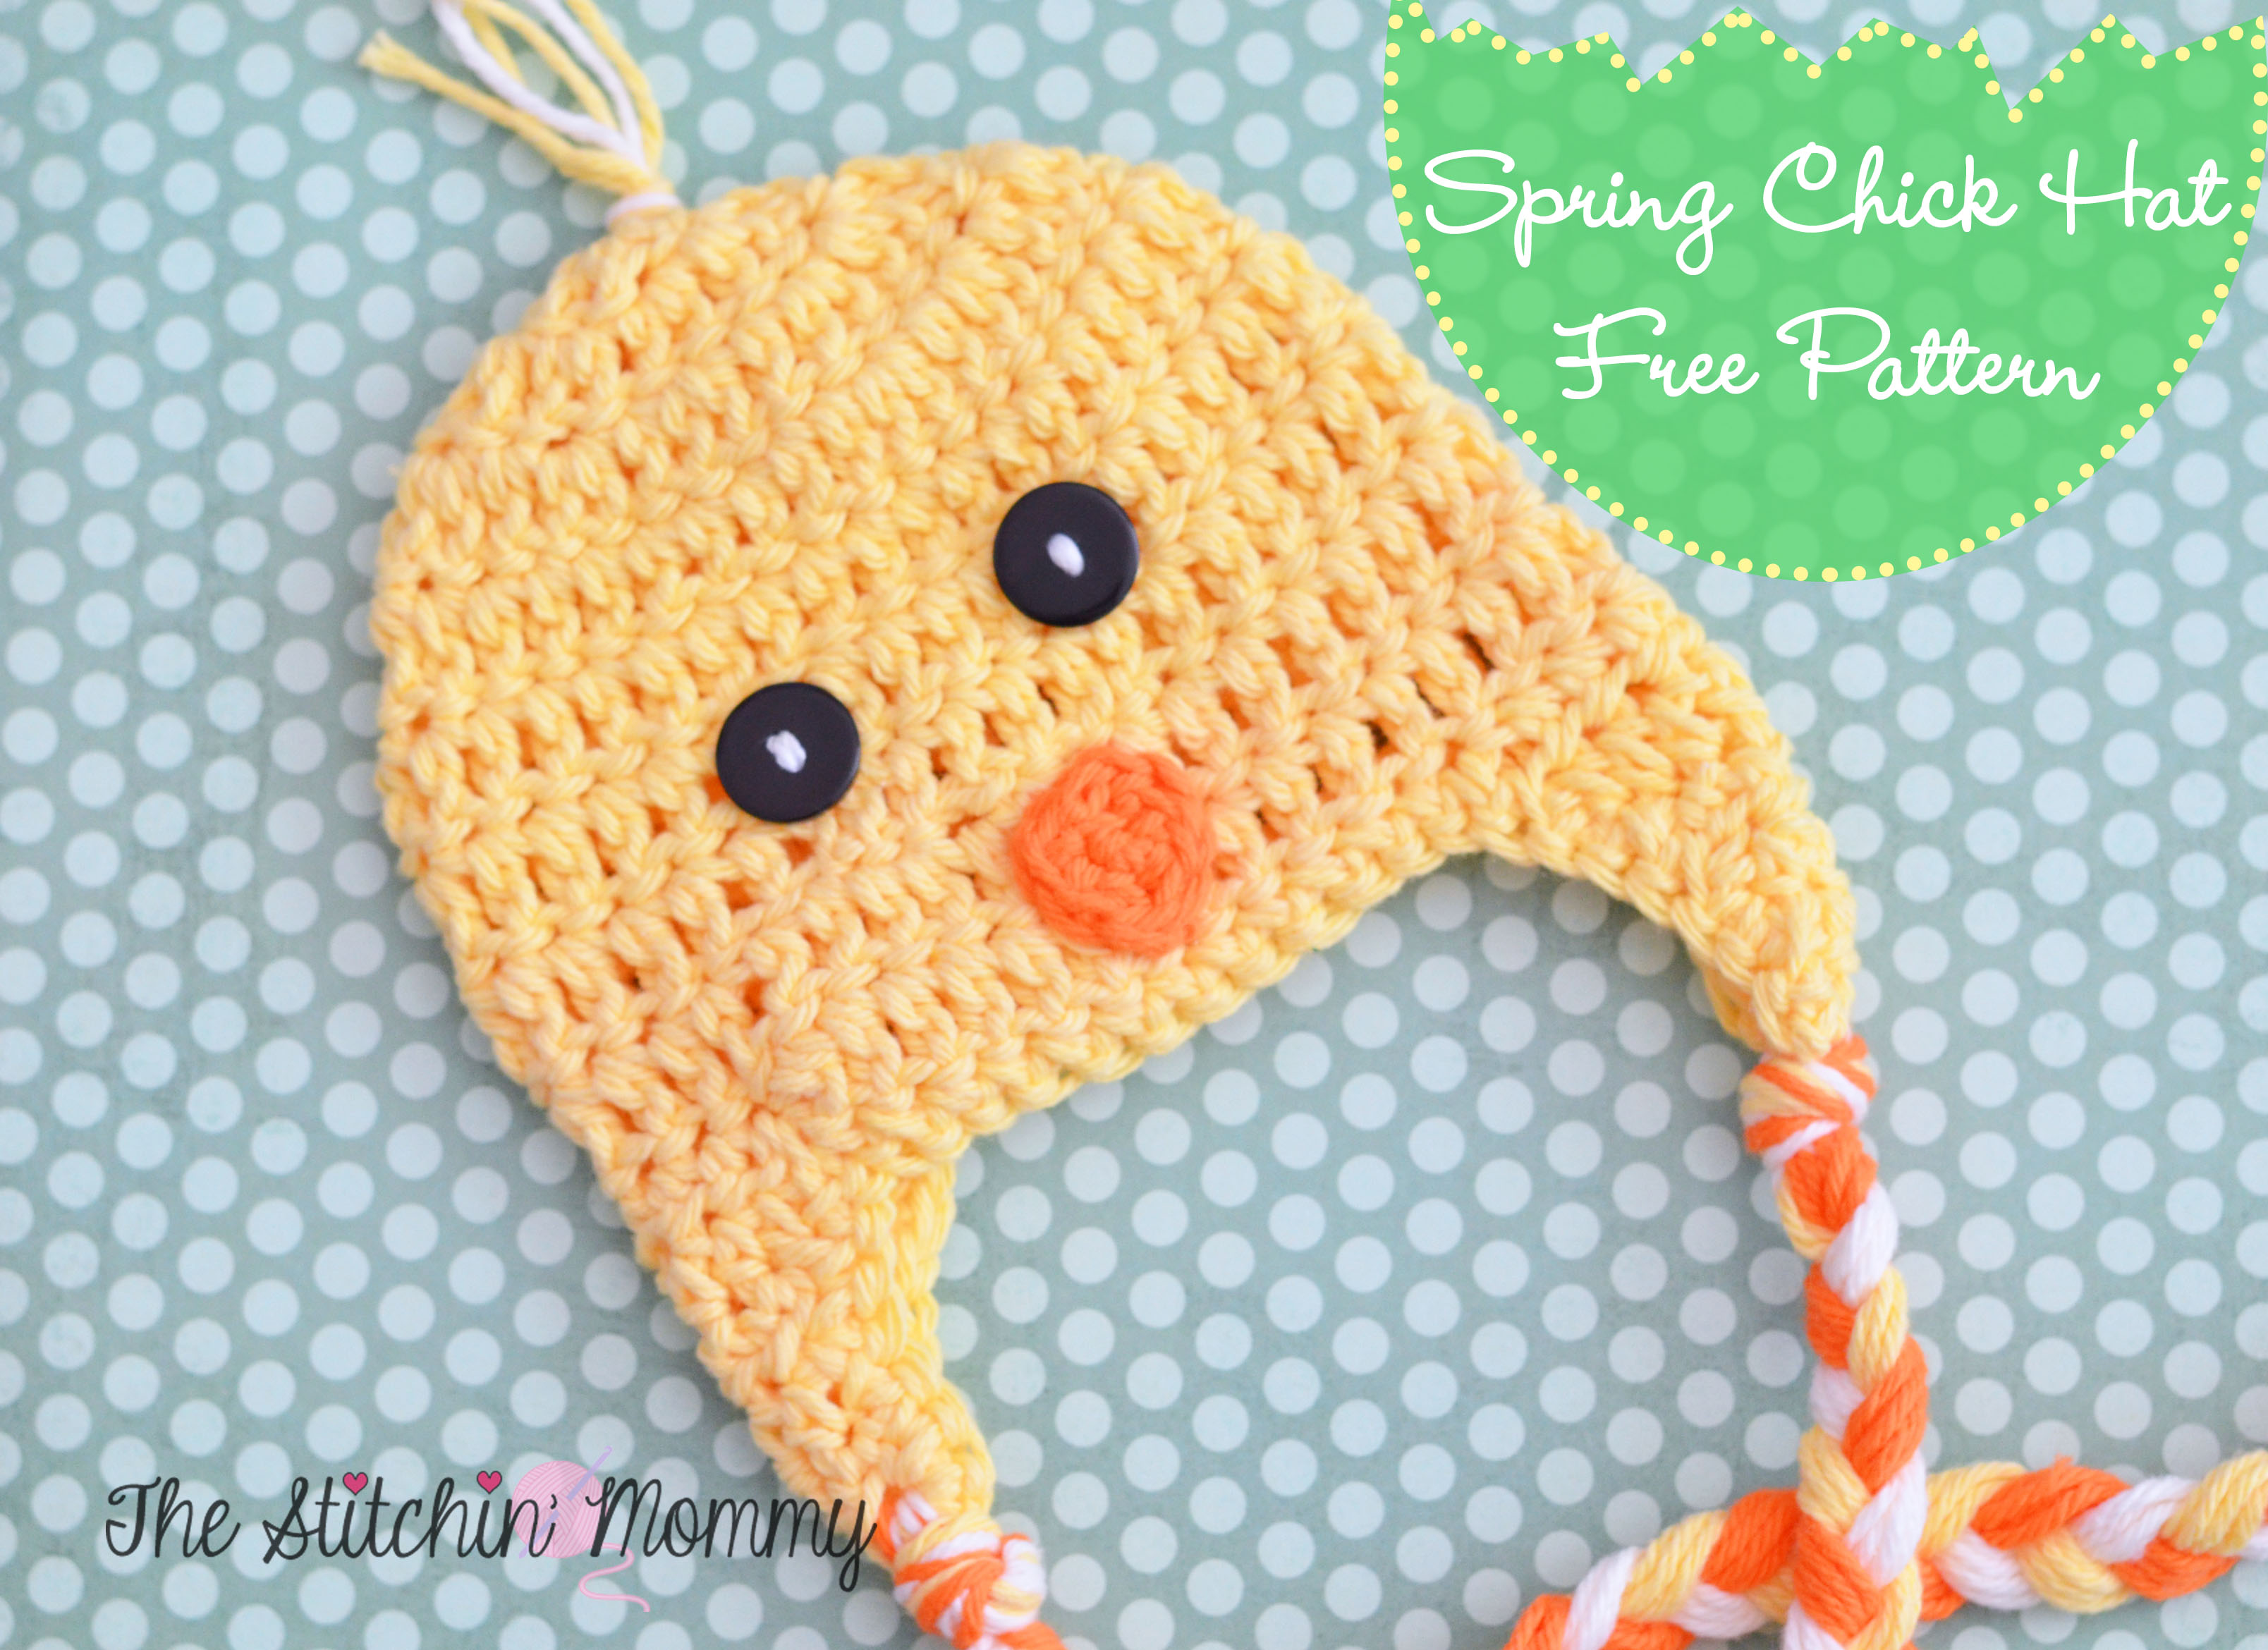 Spring Chick Hat - Free Crochet Pattern - The Stitchin Mommy